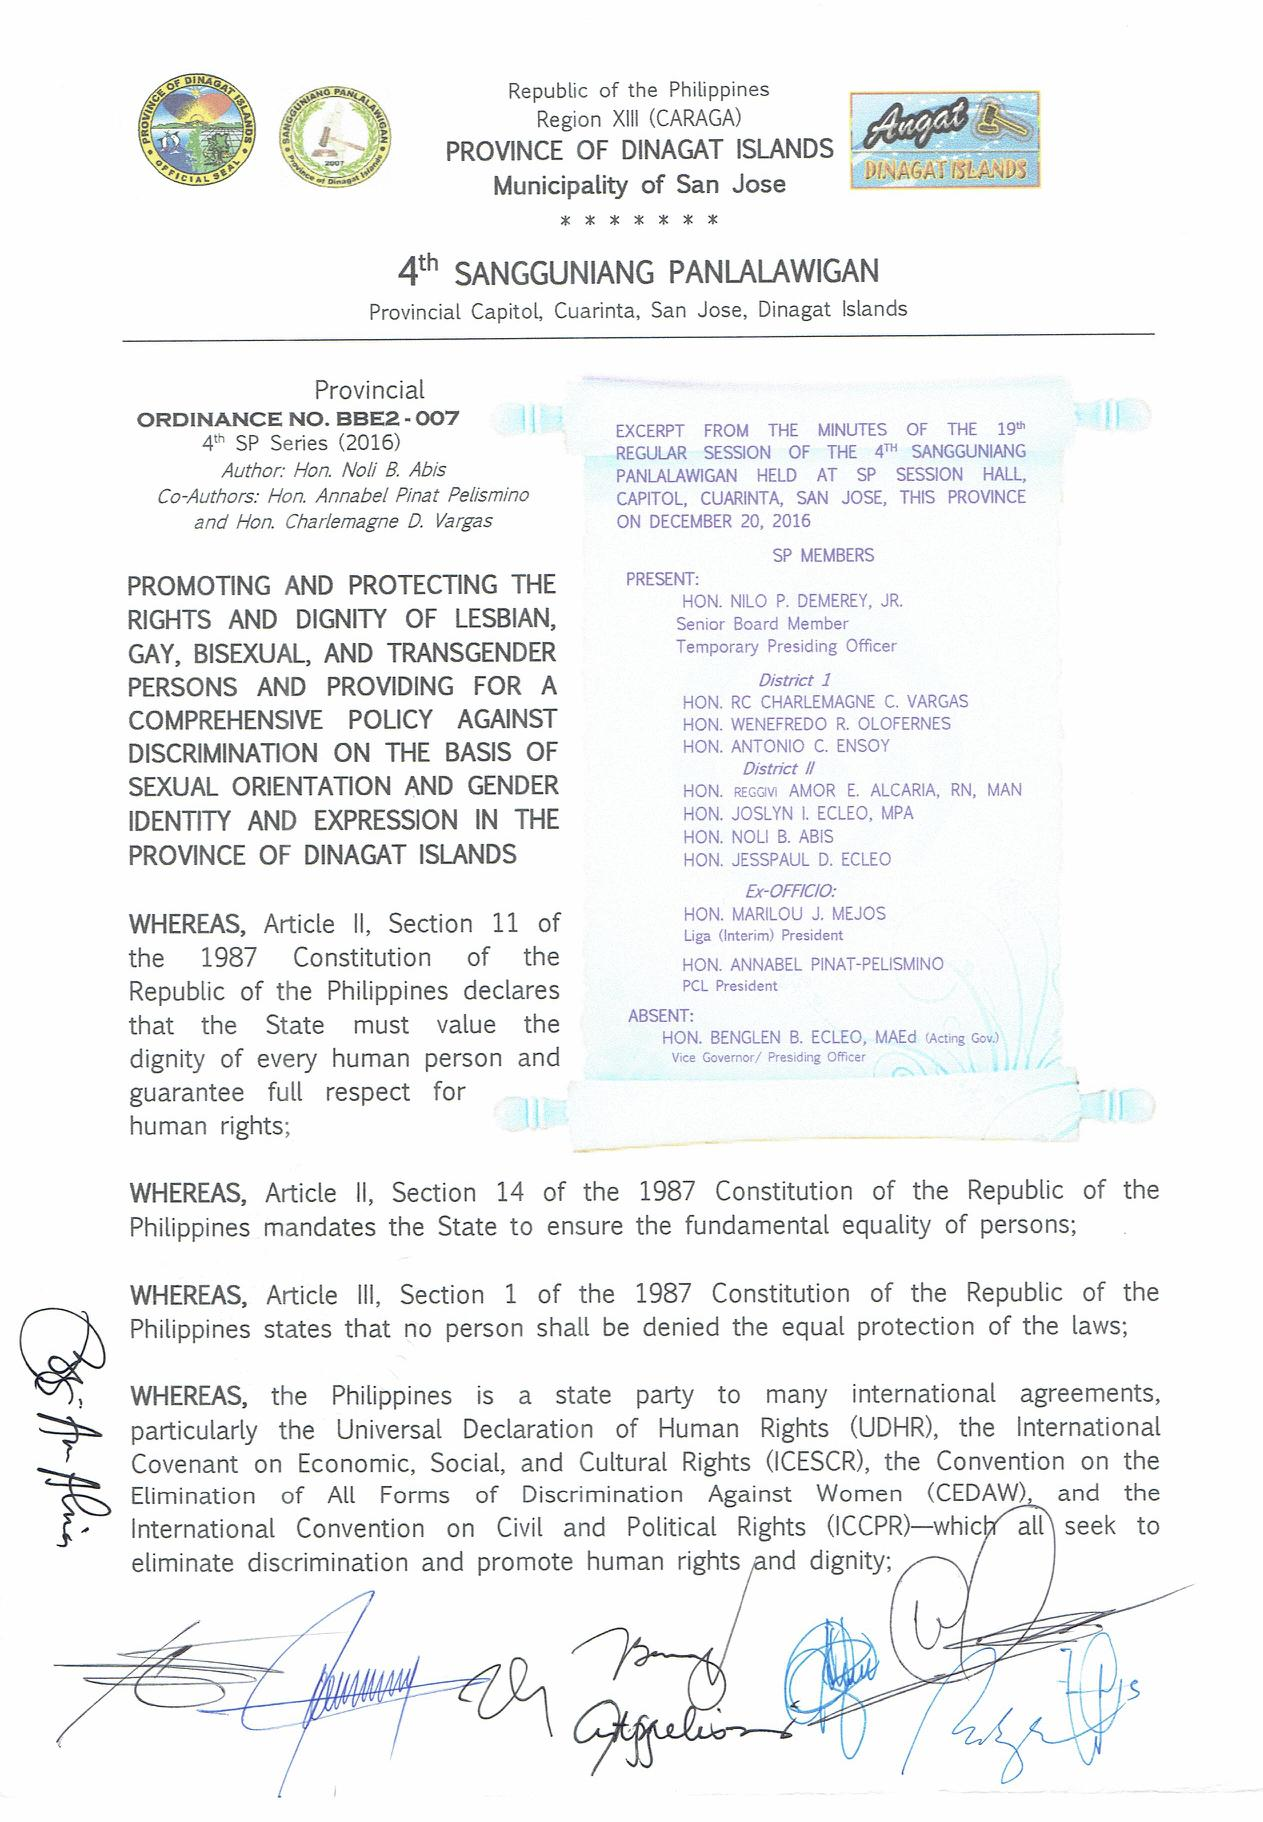 Dinagat Islands Anti-Discrimination Ordinance